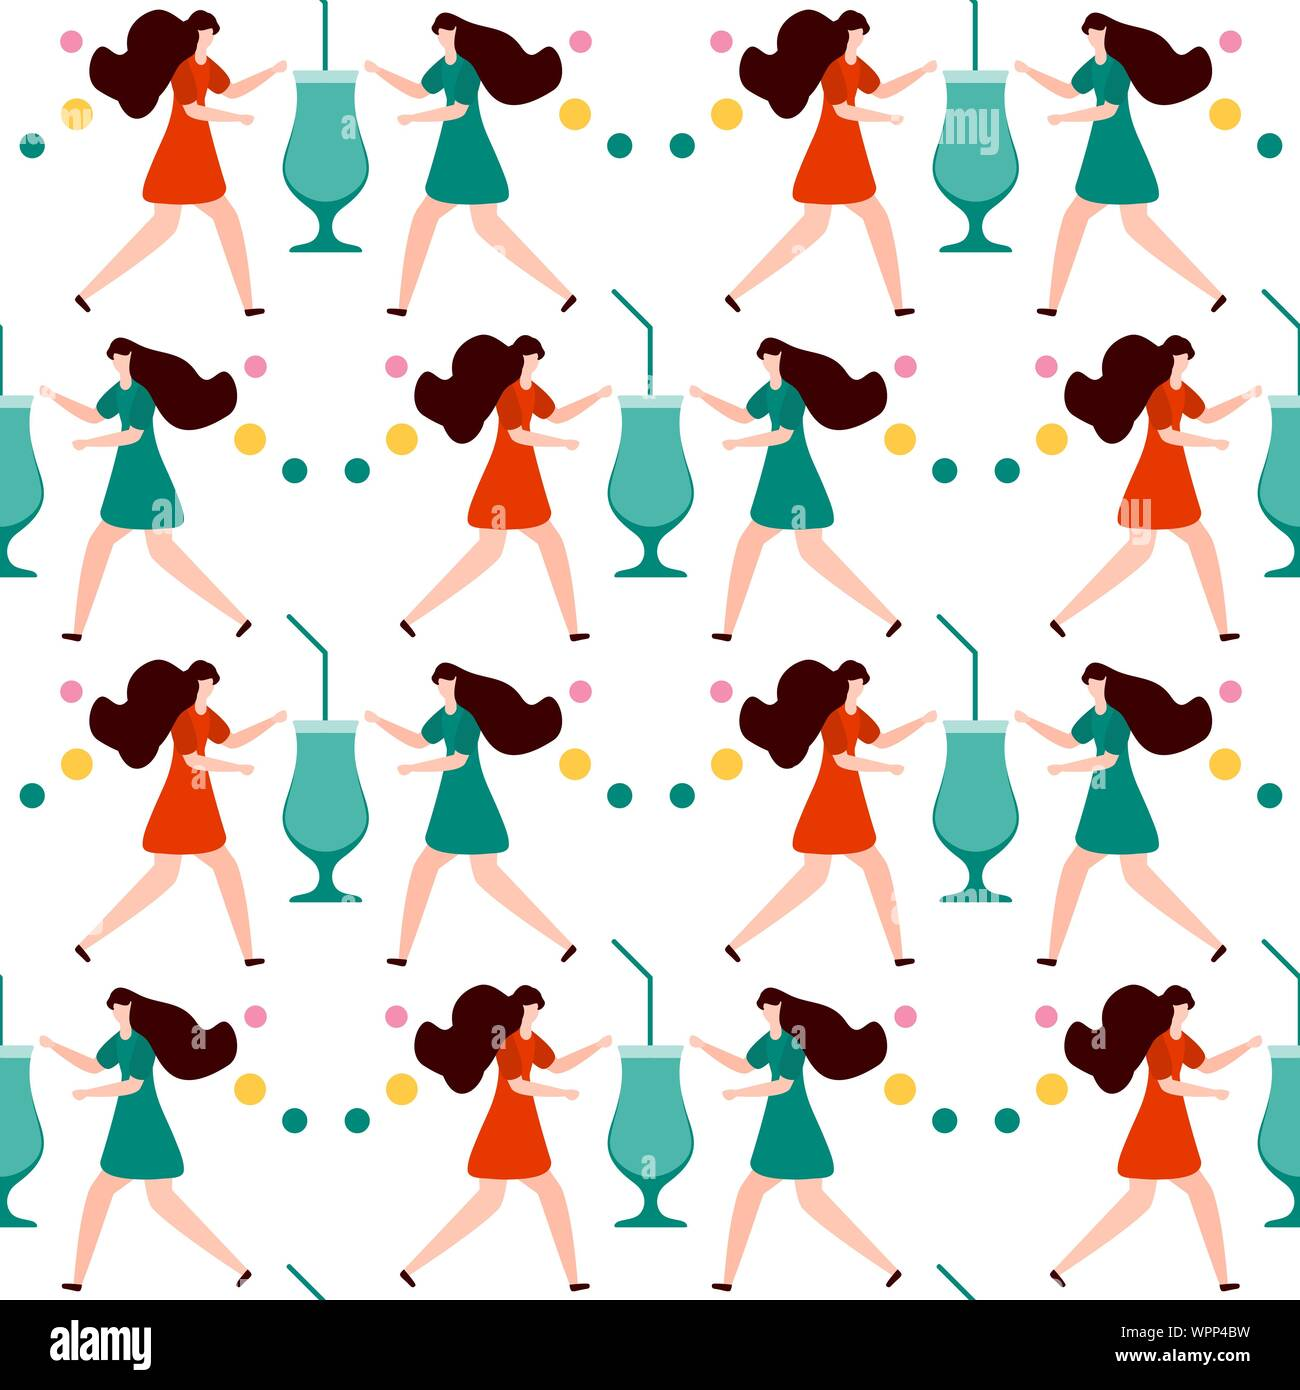 Festive Seamless Pattern Vector Illustration With Man Cocktail In Glass Party Concept Happy New Year 2020 Birthday Design For Fabric Print Wra Stock Vector Image Art Alamy